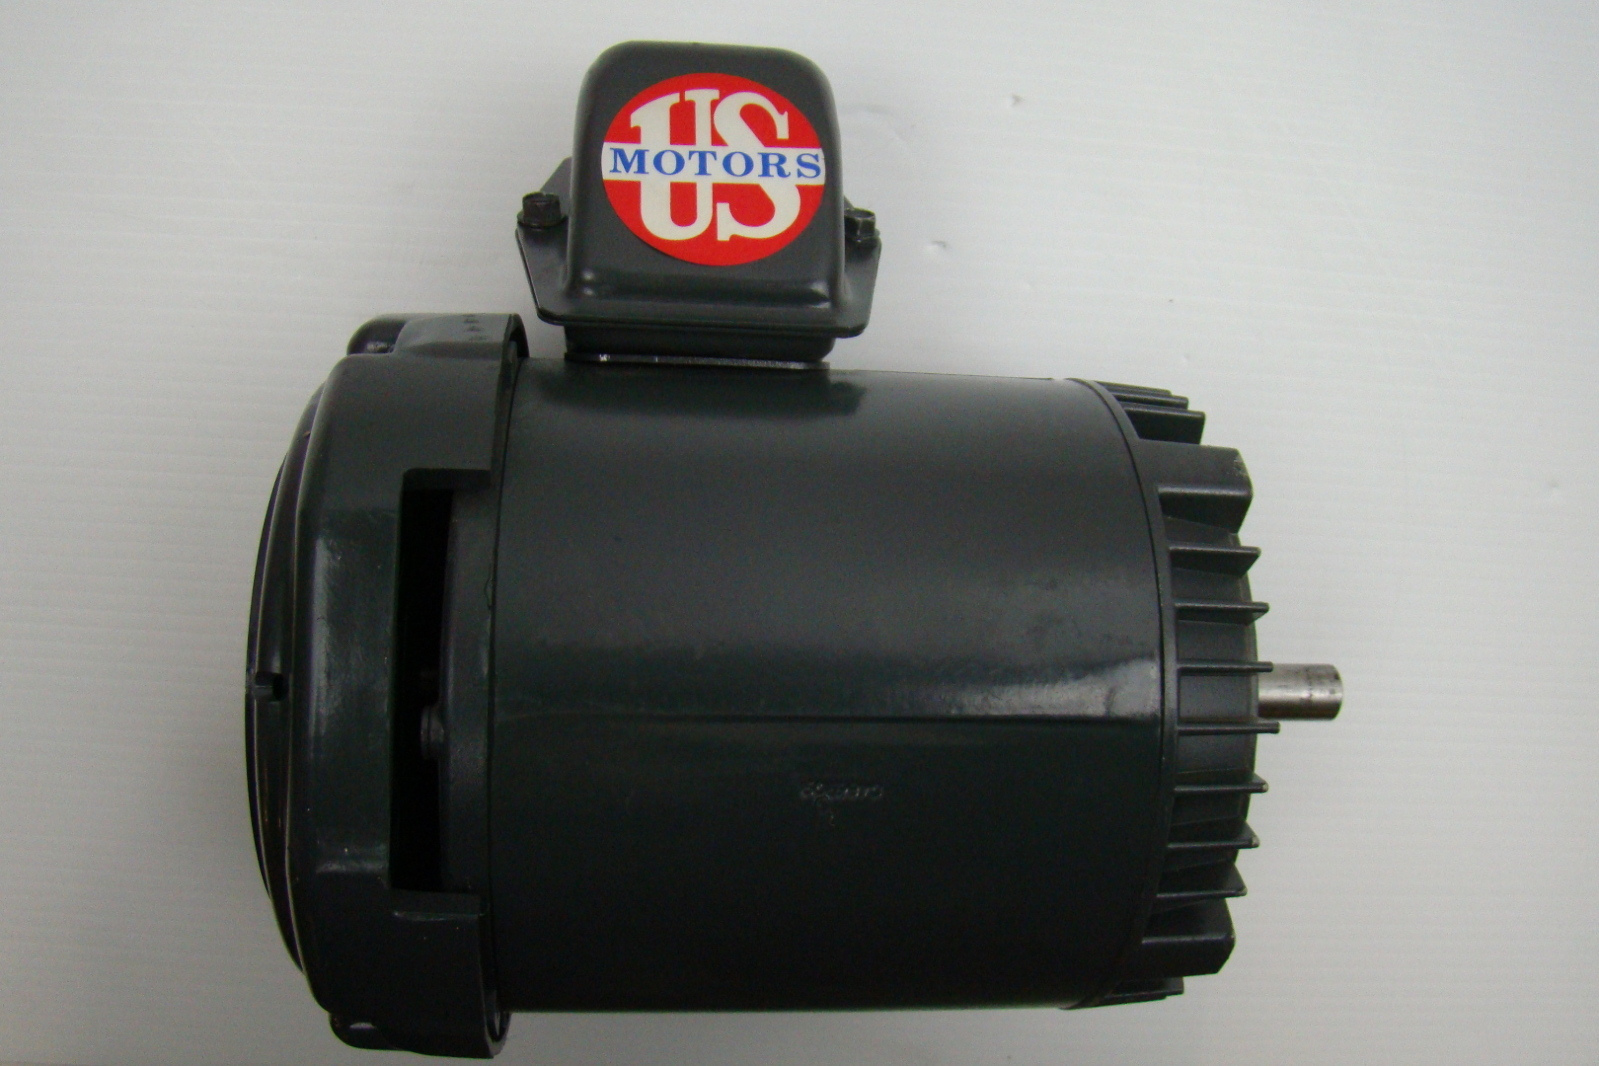 Emerson electric motor store for Drive away motors inventory